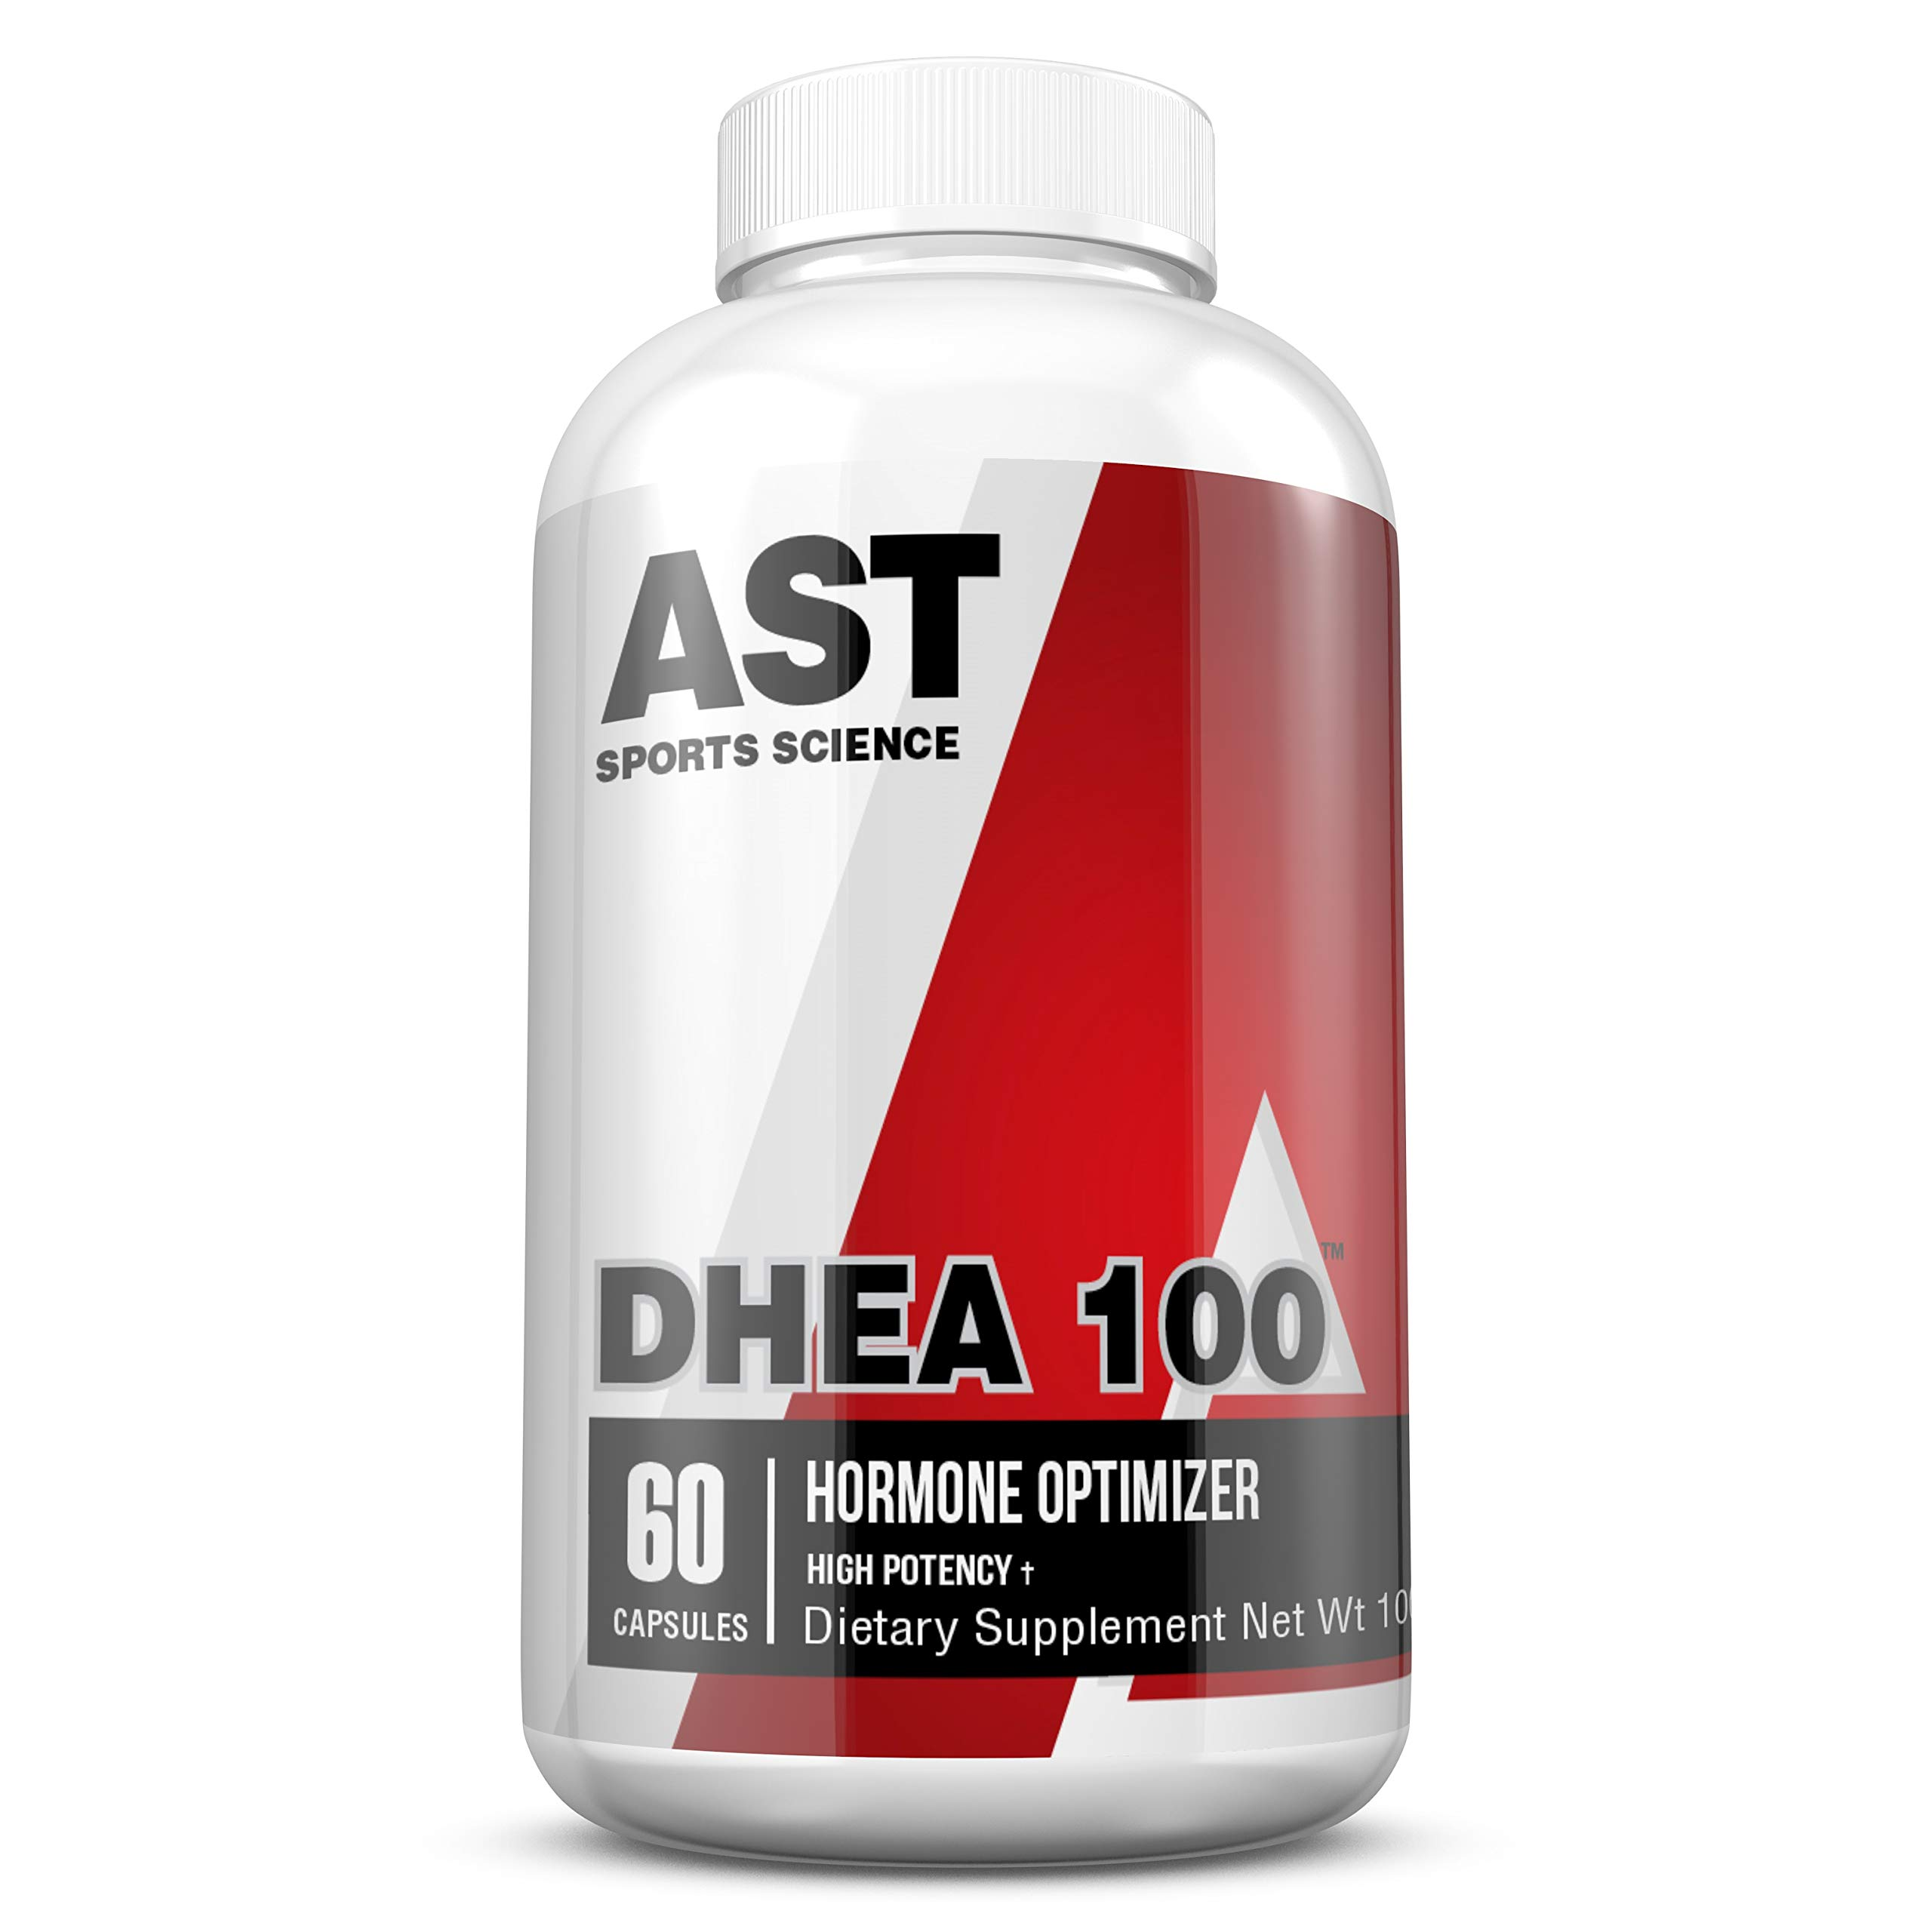 DHEA 100 - AST Sports Science 100mg per capsule - For Supporting Lean Muscle and Decreased Body Fat, Promoting Energy, and Supporting Healthy Aging in Both Men and Women. (1)